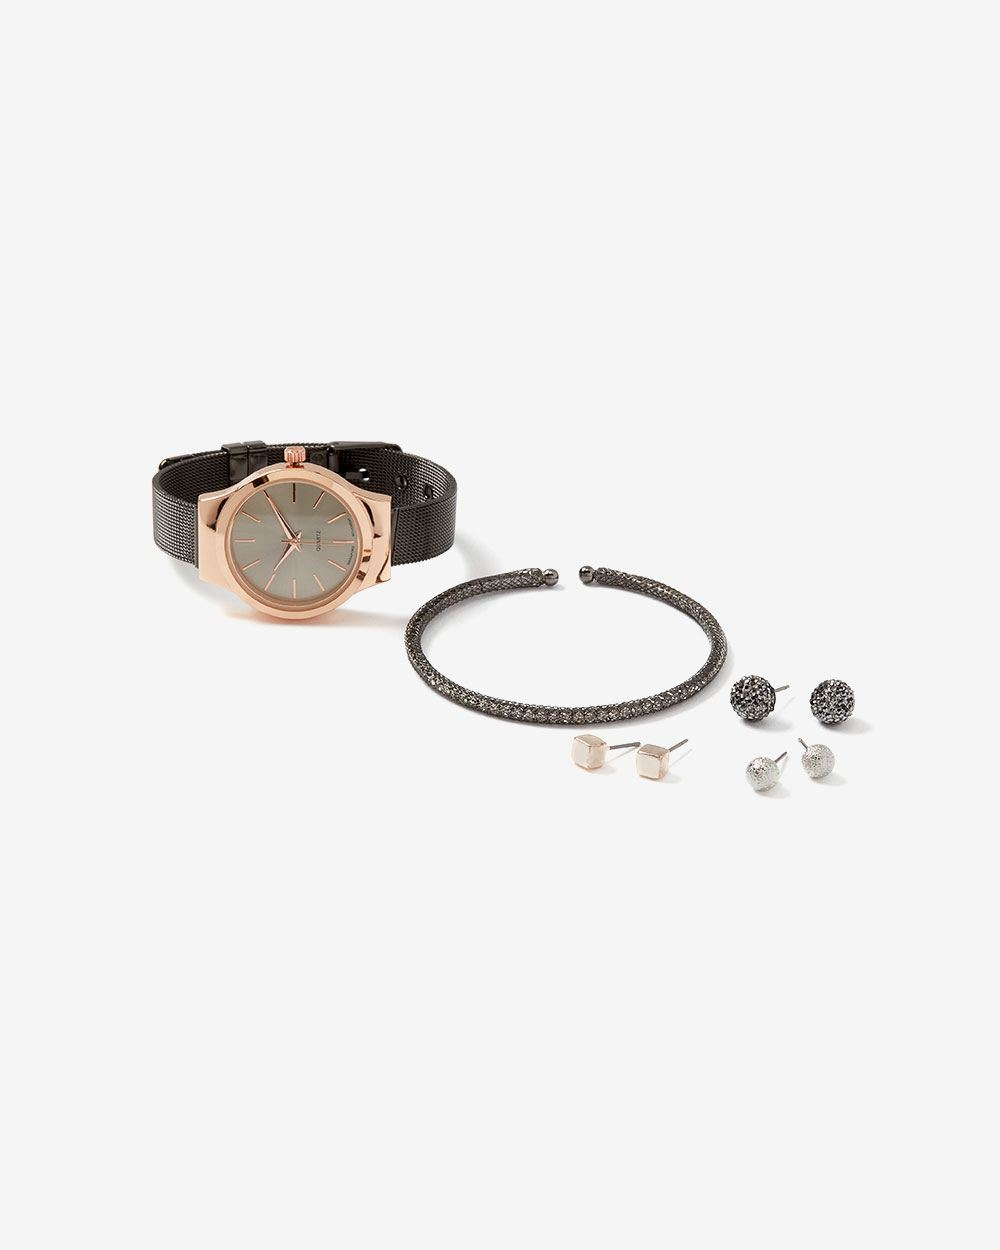 Watch, Bracelet and Earrings Gift Set